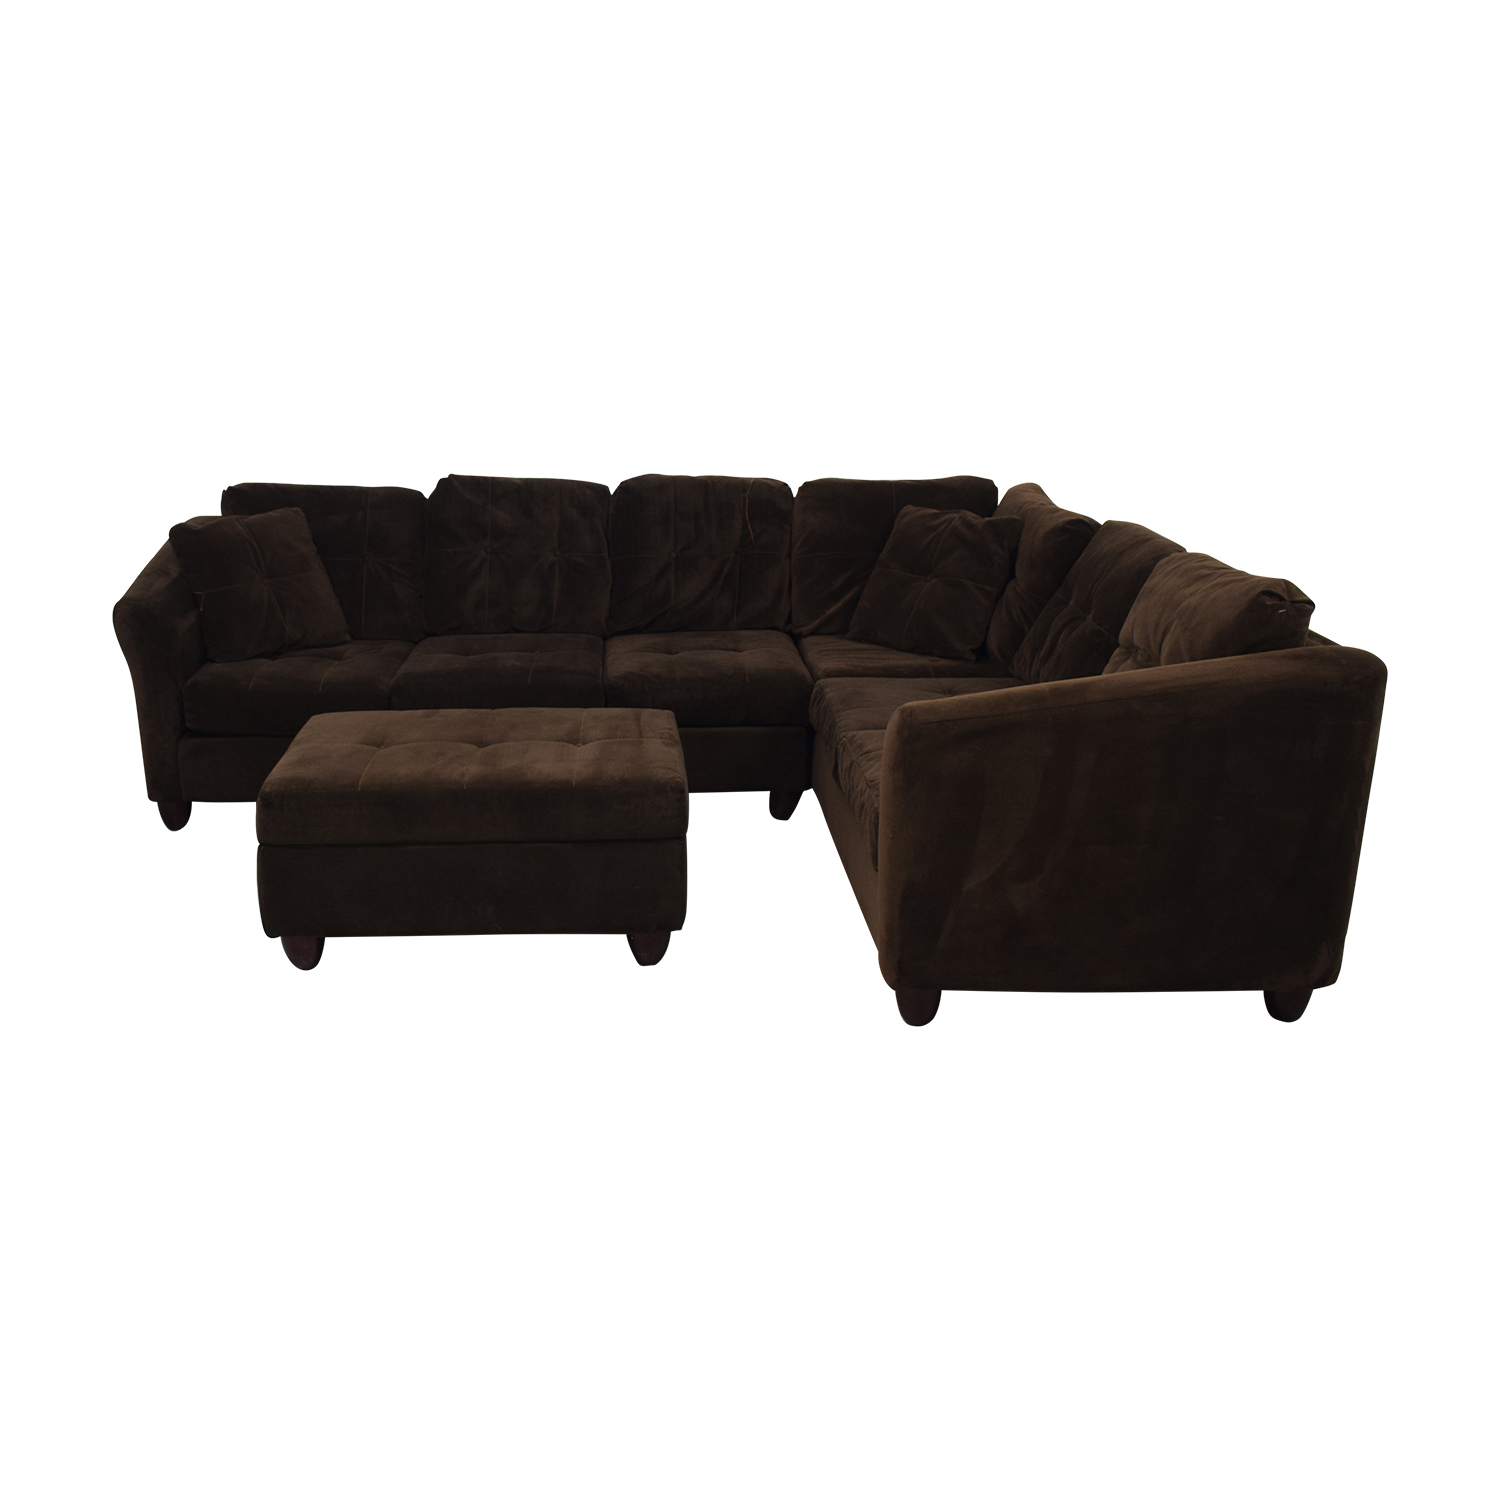 Raymour & Flanigan Brown Tufted Microsuede L-Shaped Sectional and Ottoman / Sectionals